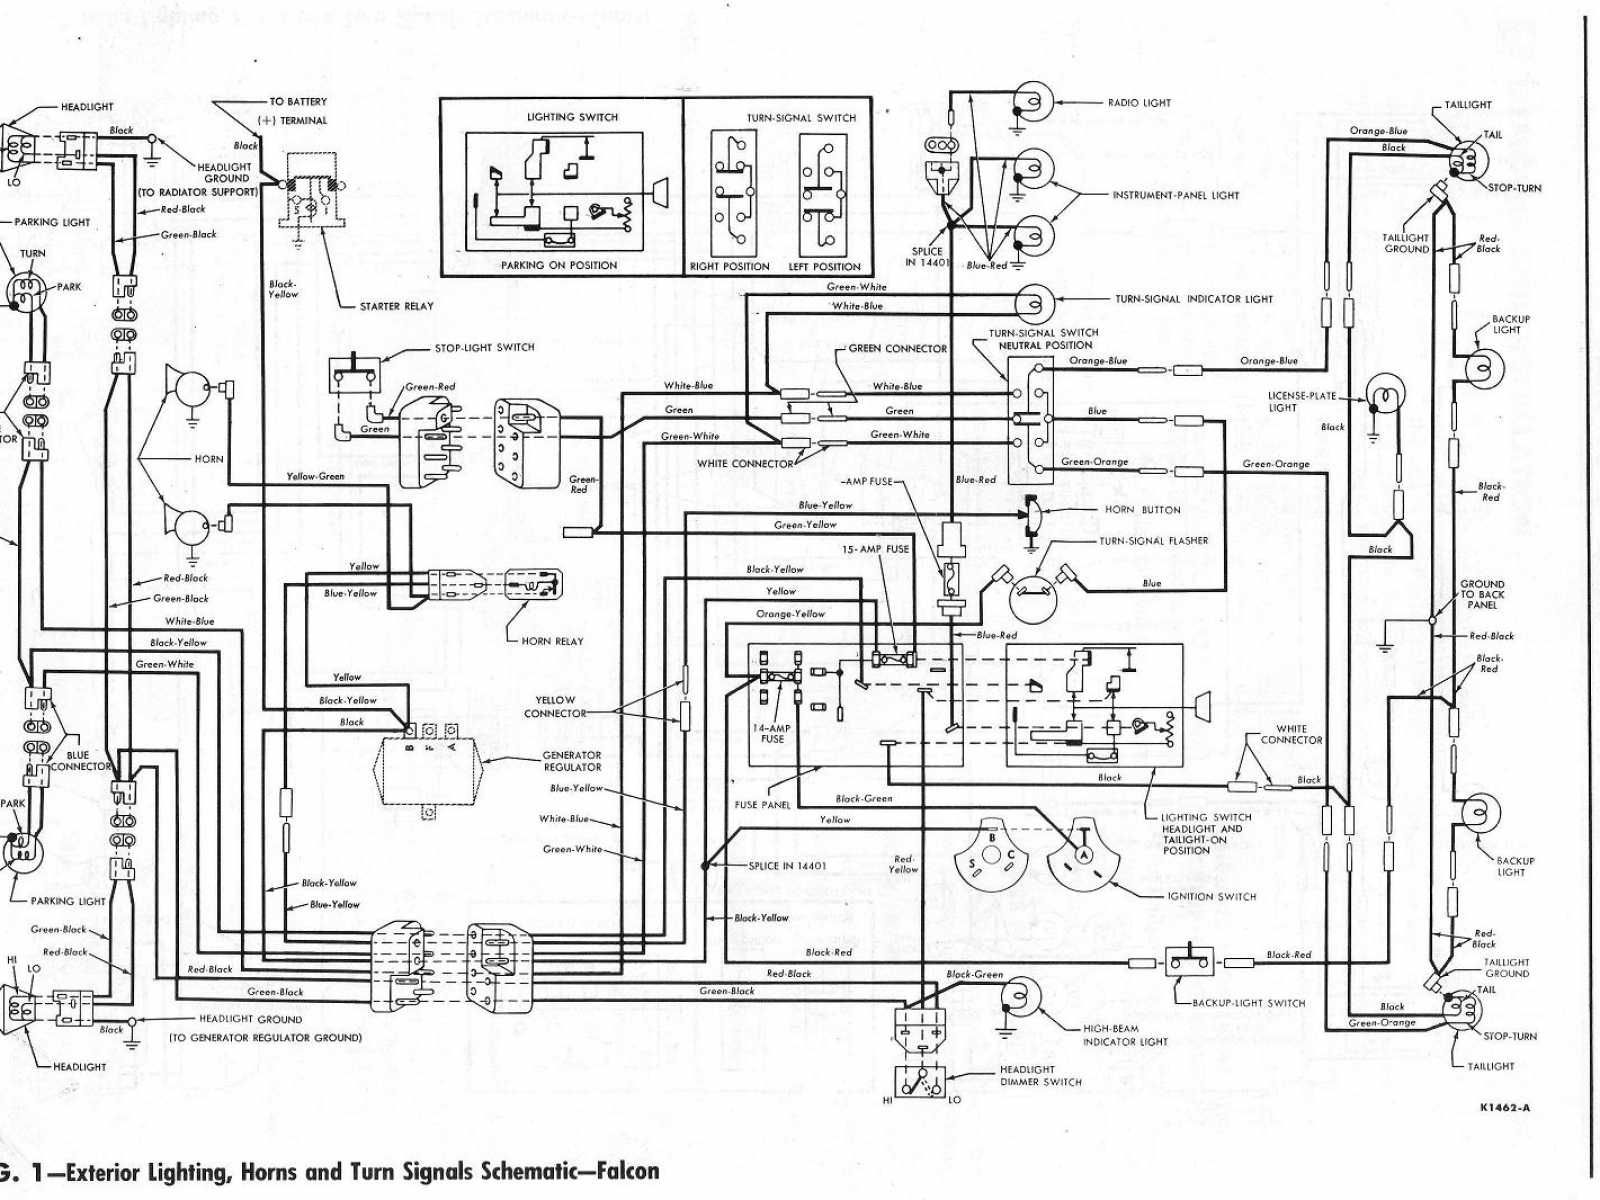 Studebaker Wiring Harness Second Take But Different 1963 Studebaker 1964 Electrical Chassis Wiring Harness Nos V8 Studebaker Wall Ac Unit Diagram Ford Galaxie